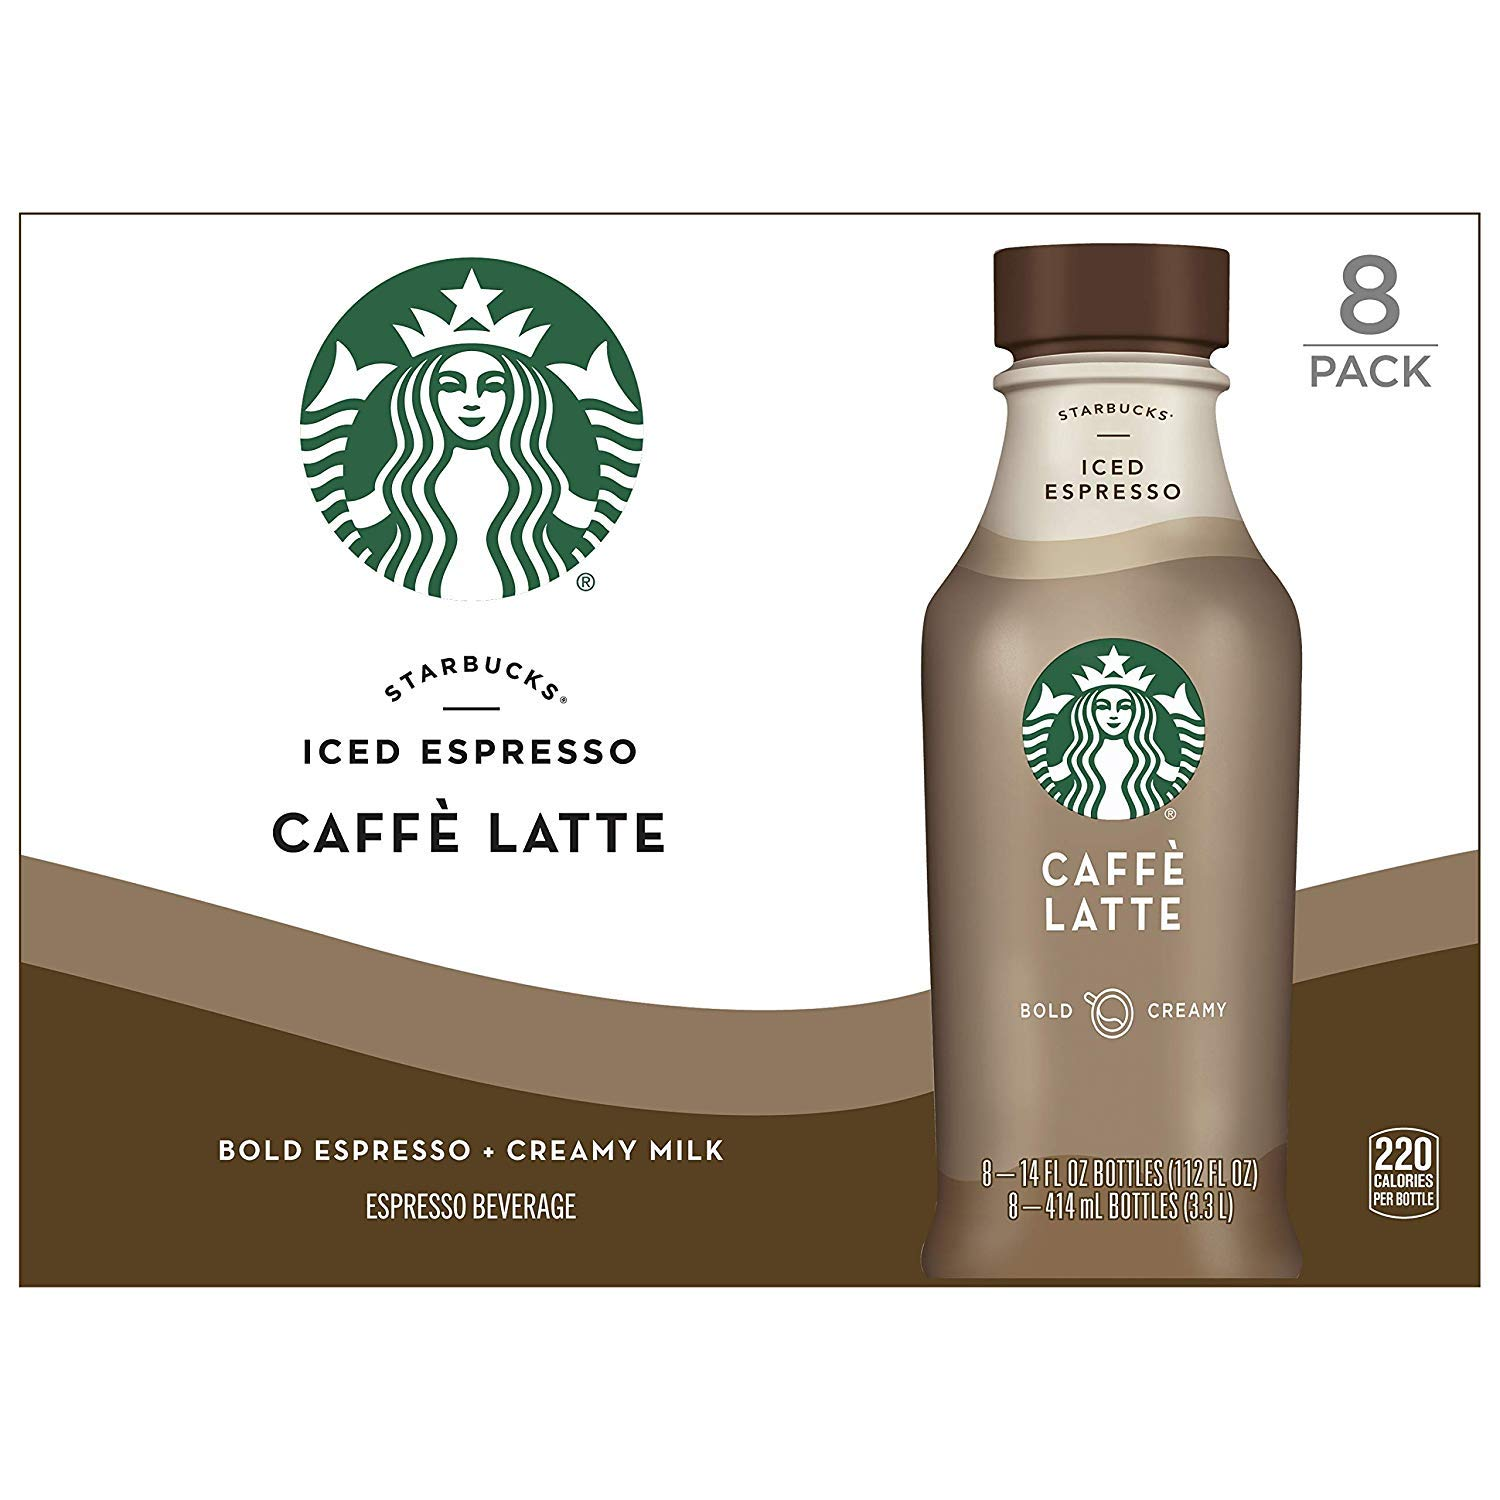 Starbucks Caffe Latte 14 Fl Oz Bottles 8 Pack Amazon Com Grocery Gourmet Food